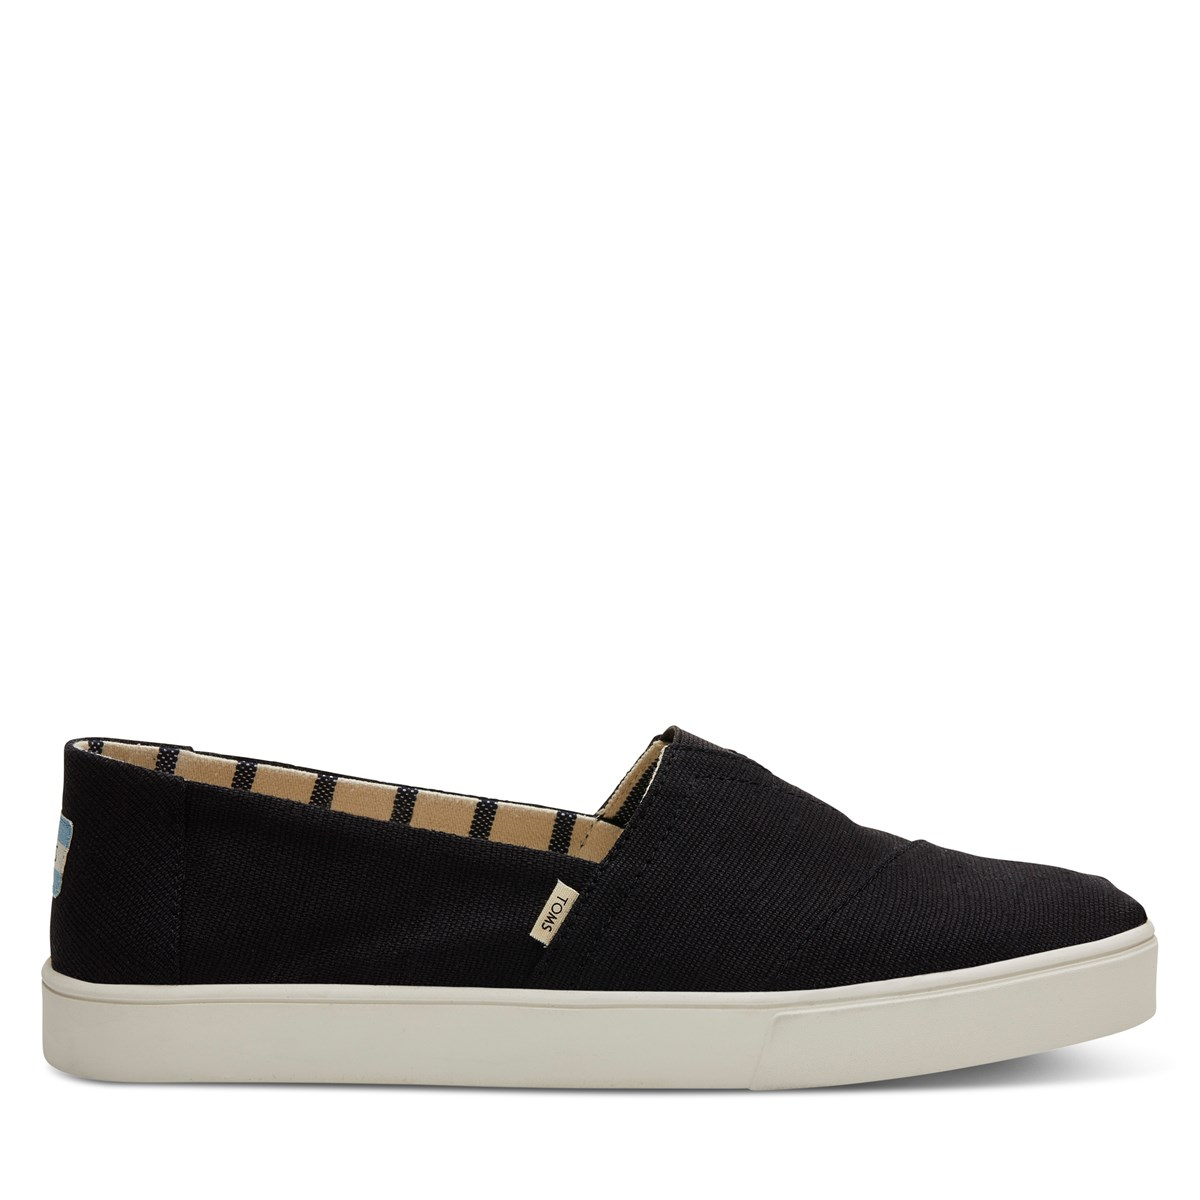 Men's Alpargata Cupsole Slip-on in black